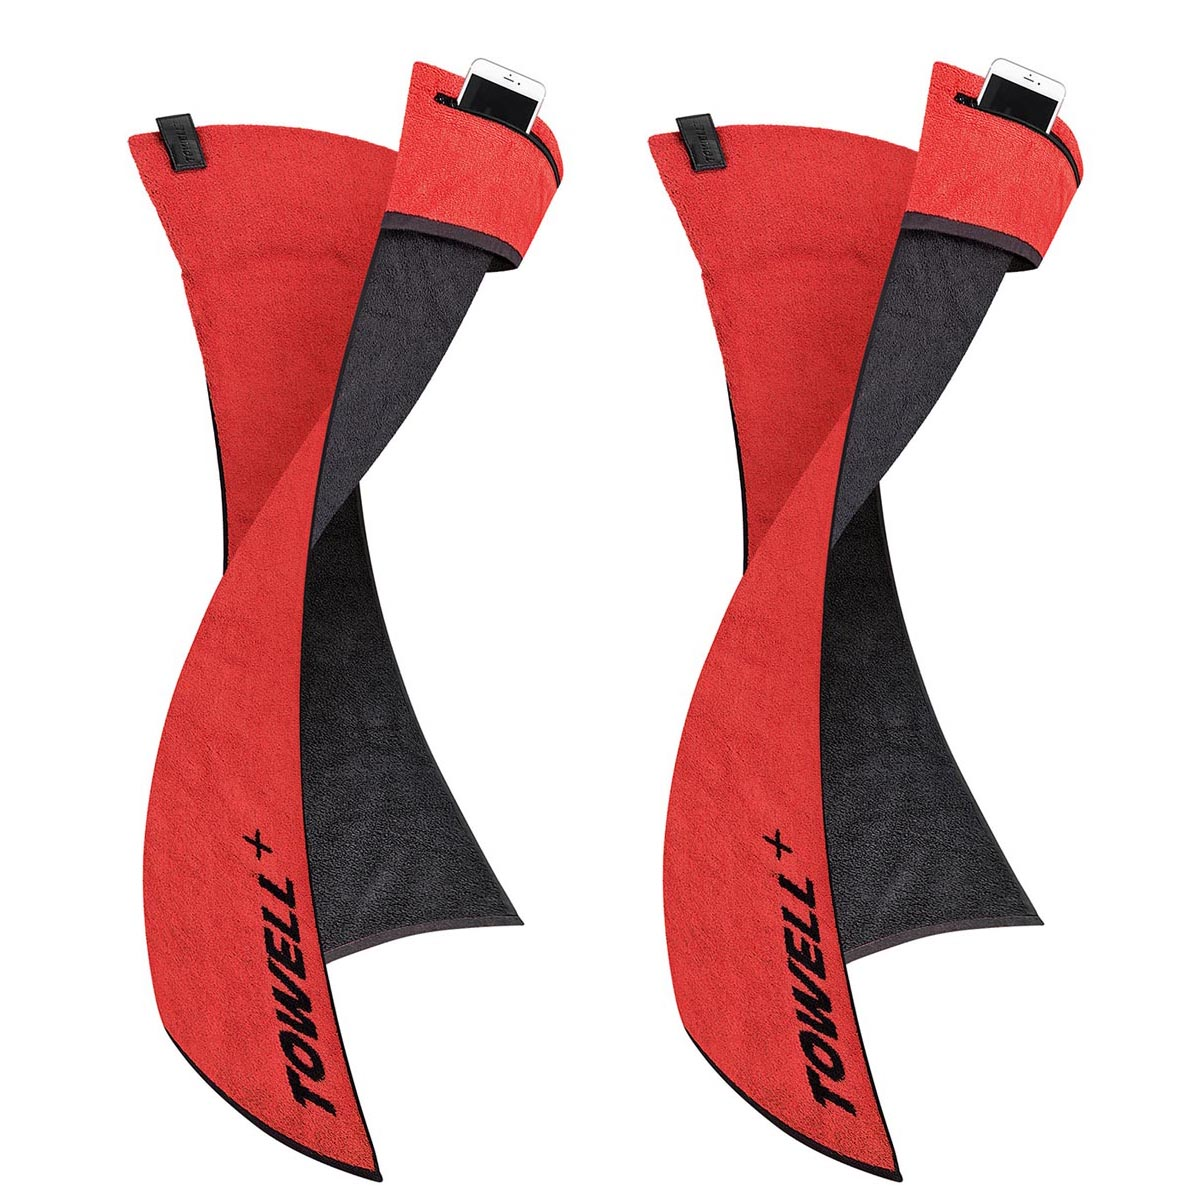 2x TOWELL Fitness Sporthandtuch 40x90cm mit Tasche Baumwolle Rot | 2er_Towell